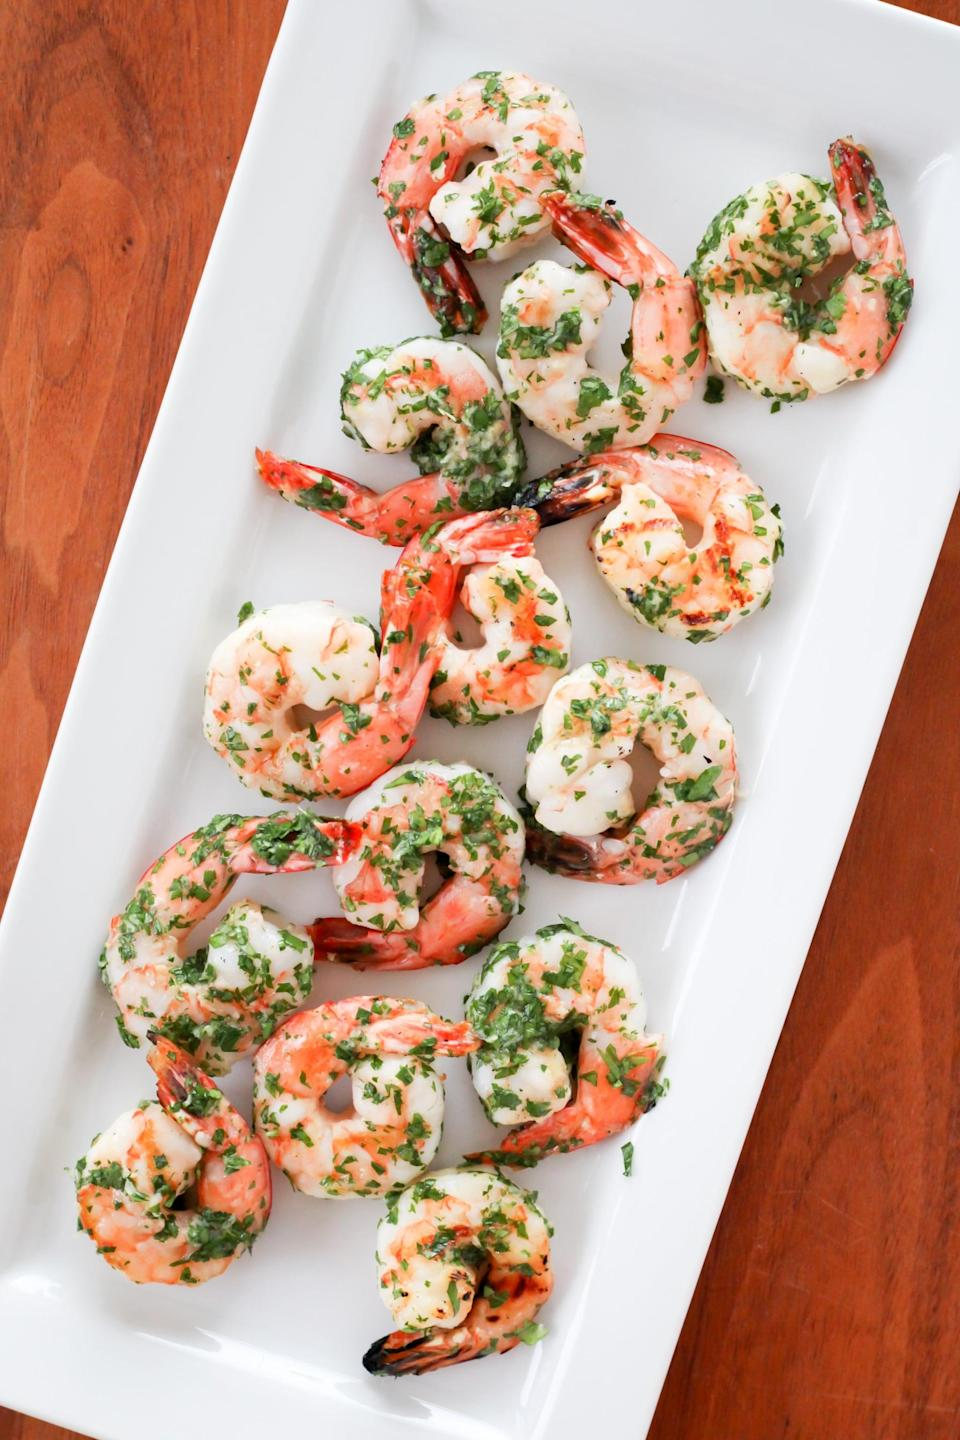 "<p>Spread a homemade gremolata, an herb sauce with garlic and lemon, all over the shrimp once they've been grilled for an easy boost of flavor. </p> <p><strong>Get the recipe:</strong> <a href=""https://www.popsugar.com/fitness/Easy-Recipe-Grilled-Shrimp-42368633"" class=""link rapid-noclick-resp"" rel=""nofollow noopener"" target=""_blank"" data-ylk=""slk:grilled shrimp with gremolata"">grilled shrimp with gremolata</a></p>"